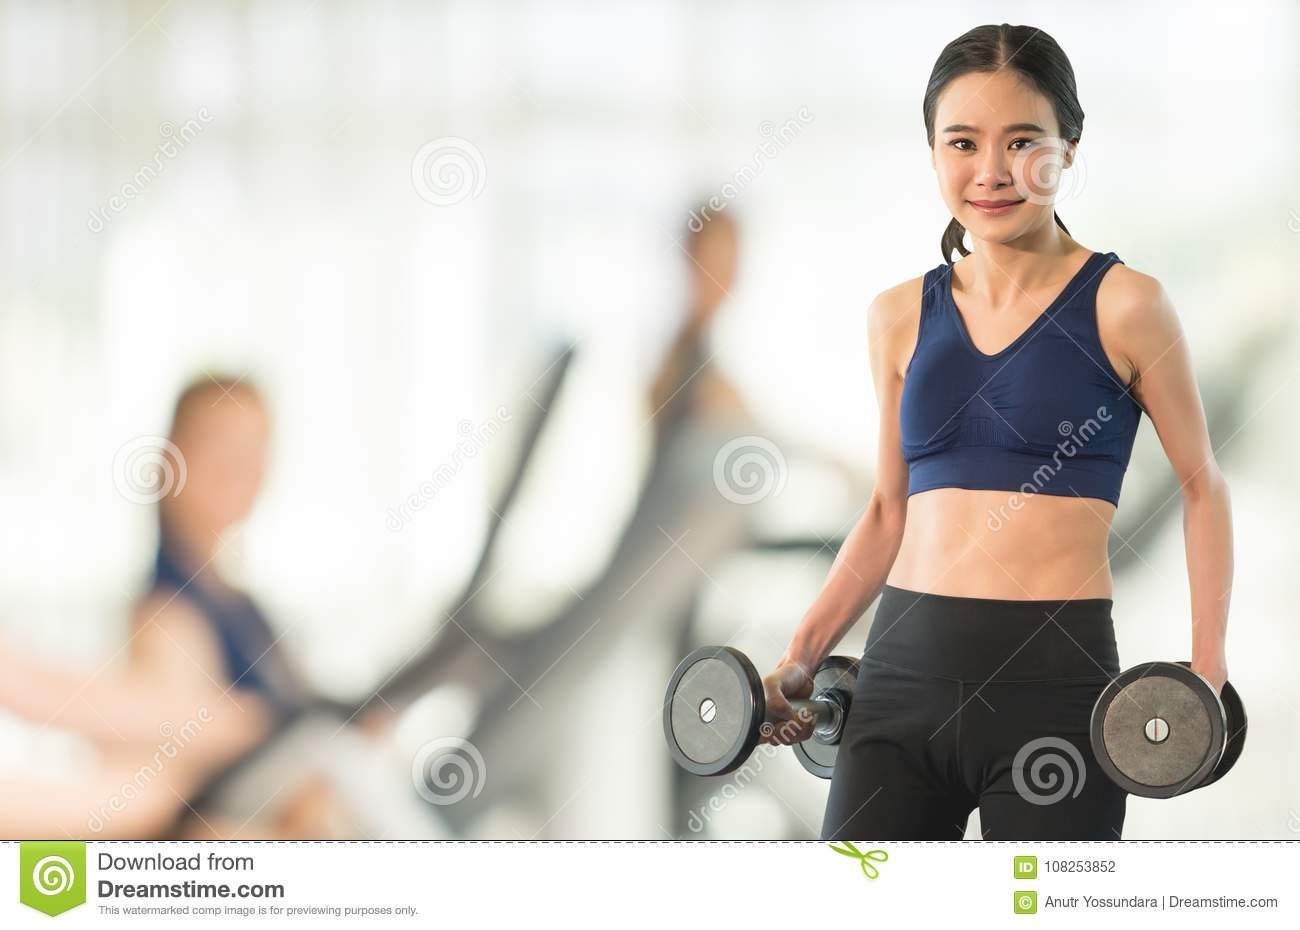 Slim woman holding dumbbell on Blur abstract gym